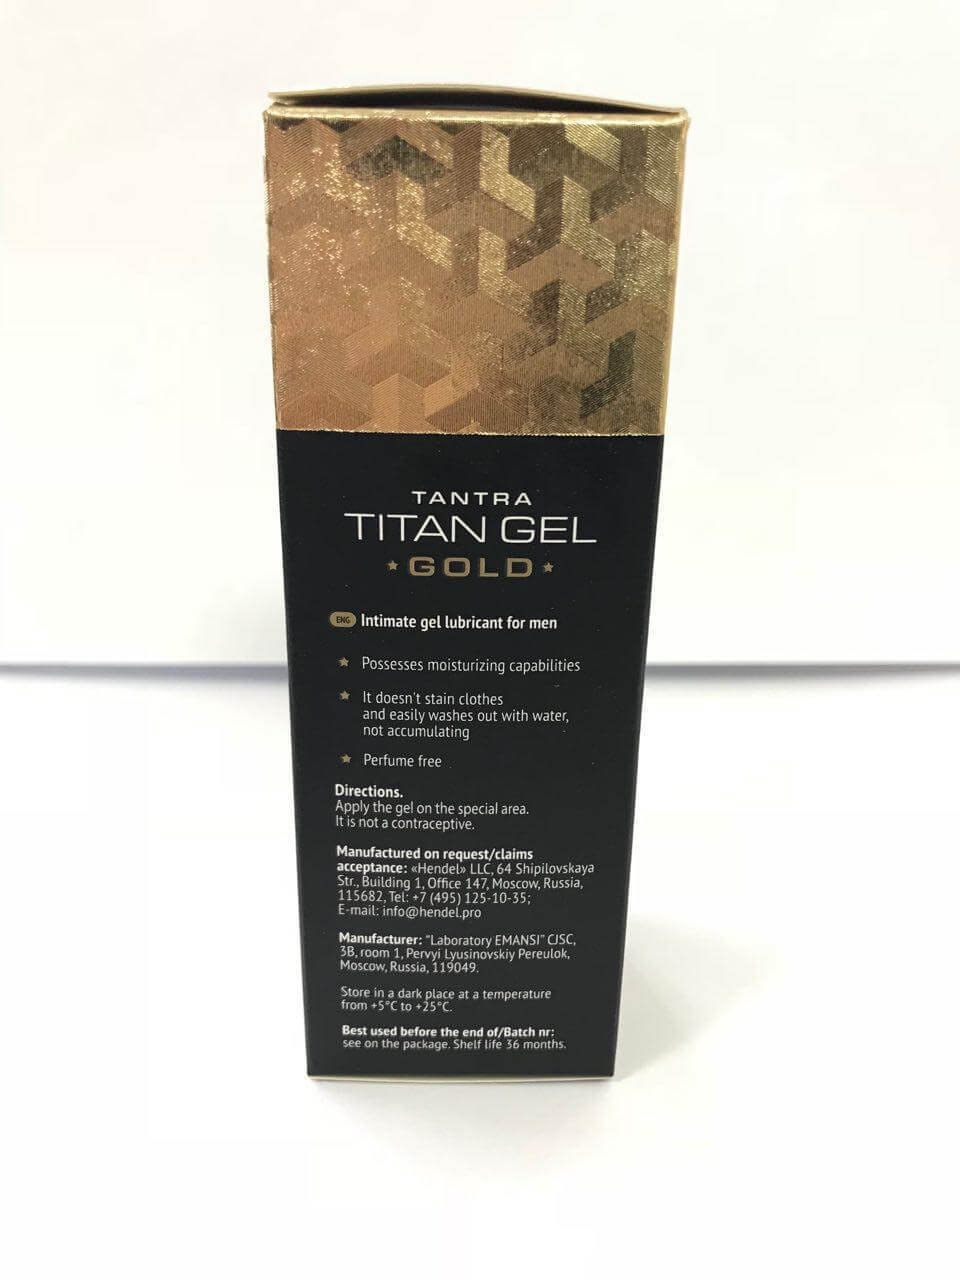 titan gel for men intimate lubricant hendel llc 50 ml ebay titan gel